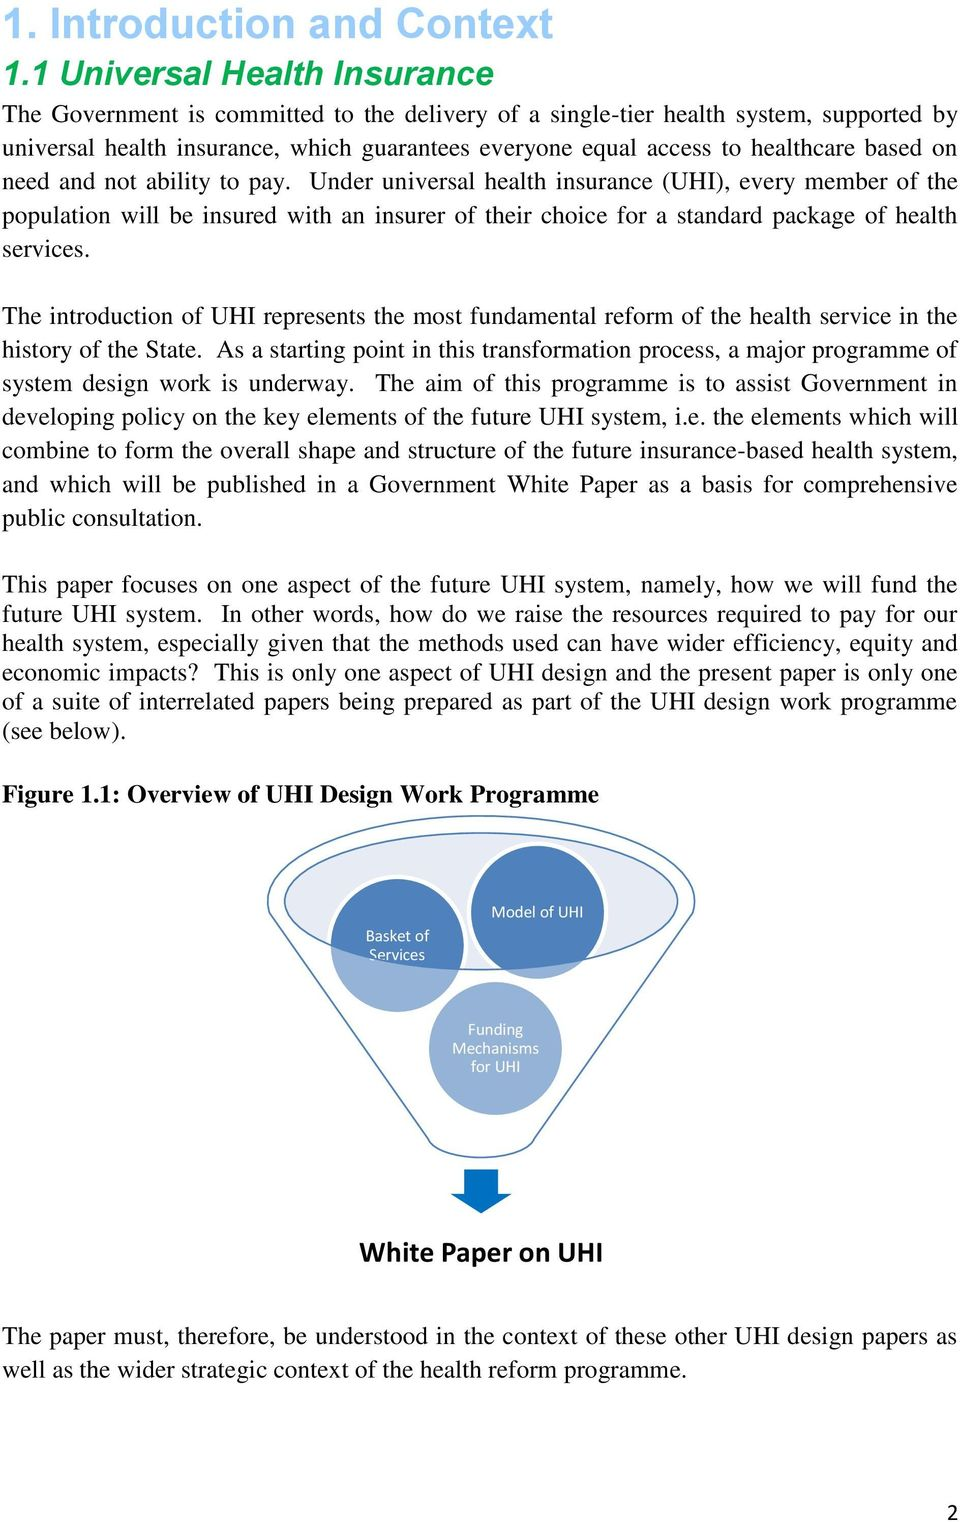 based on need and not ability to pay. Under universal health insurance (UHI), every member of the population will be insured with an insurer of their choice for a standard package of health services.